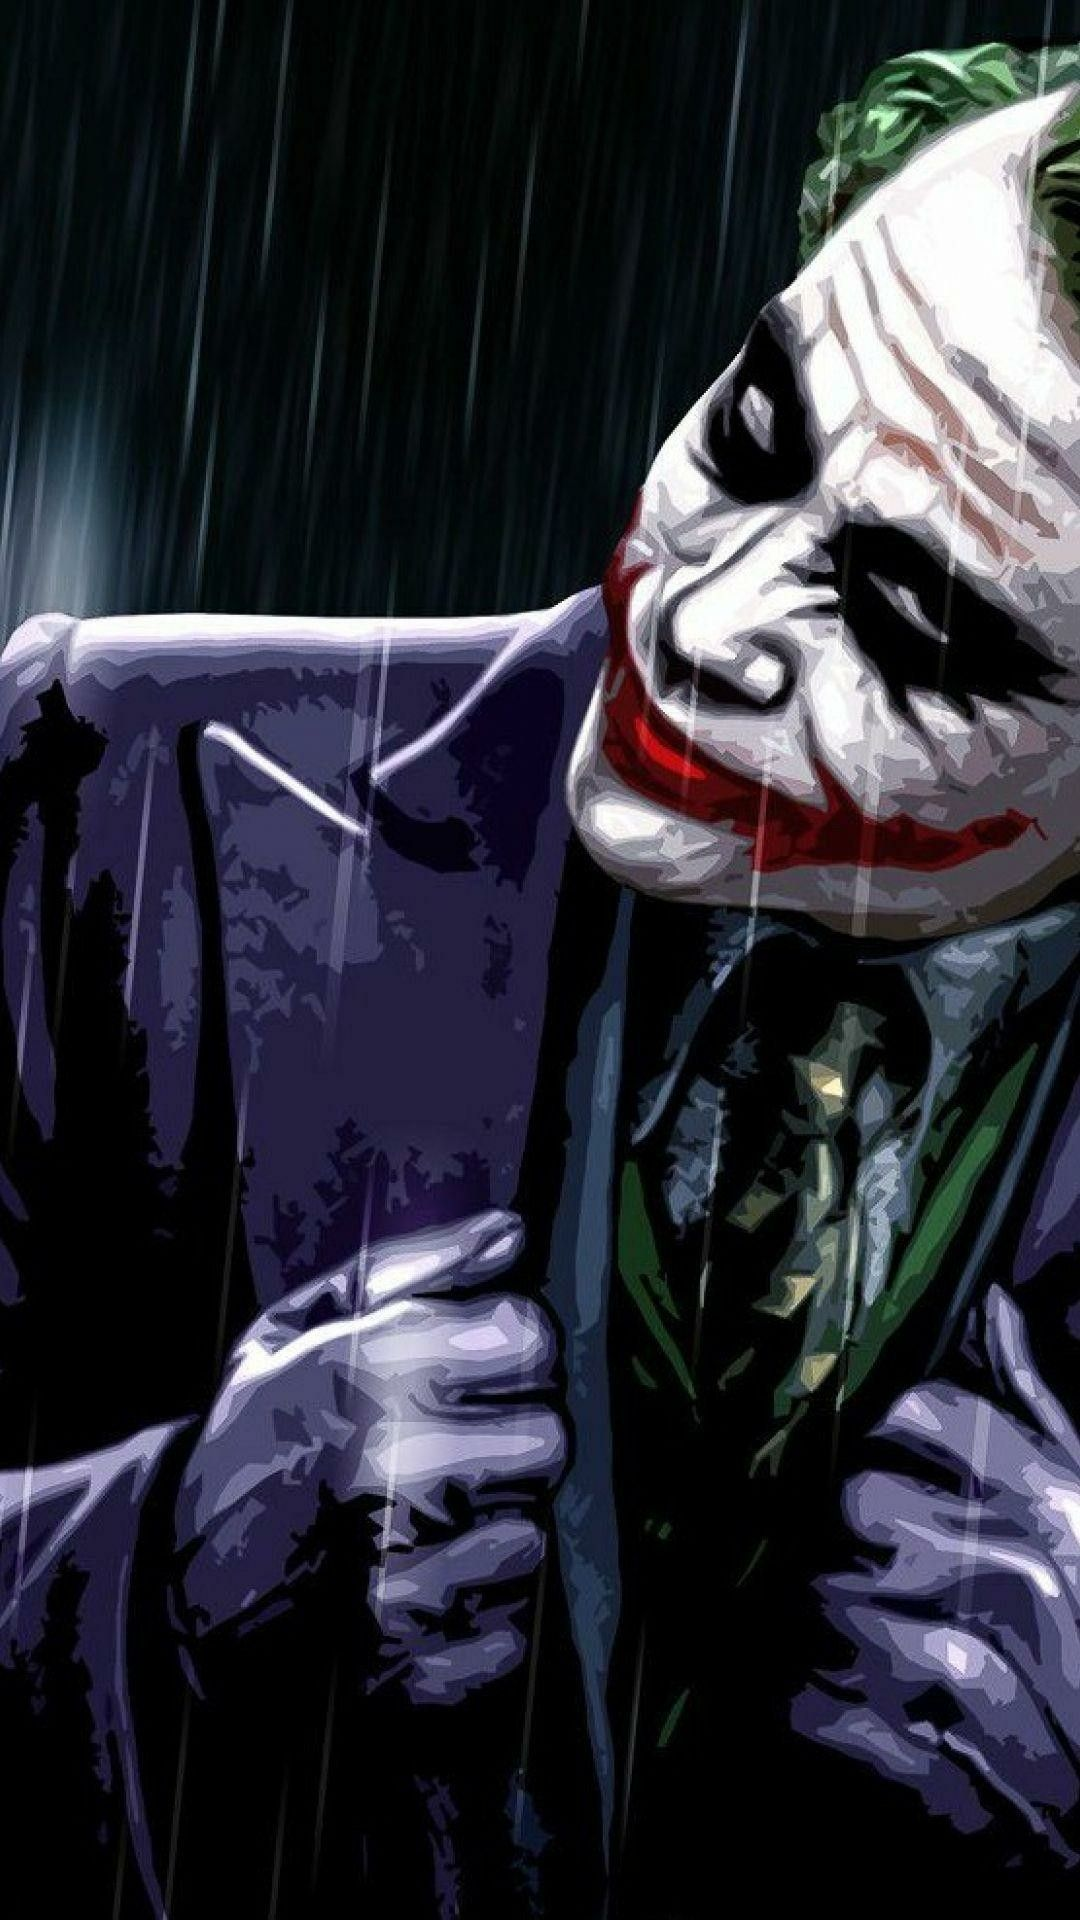 Pin by ishivaay on Joker in 2020 Batman wallpaper, Joker